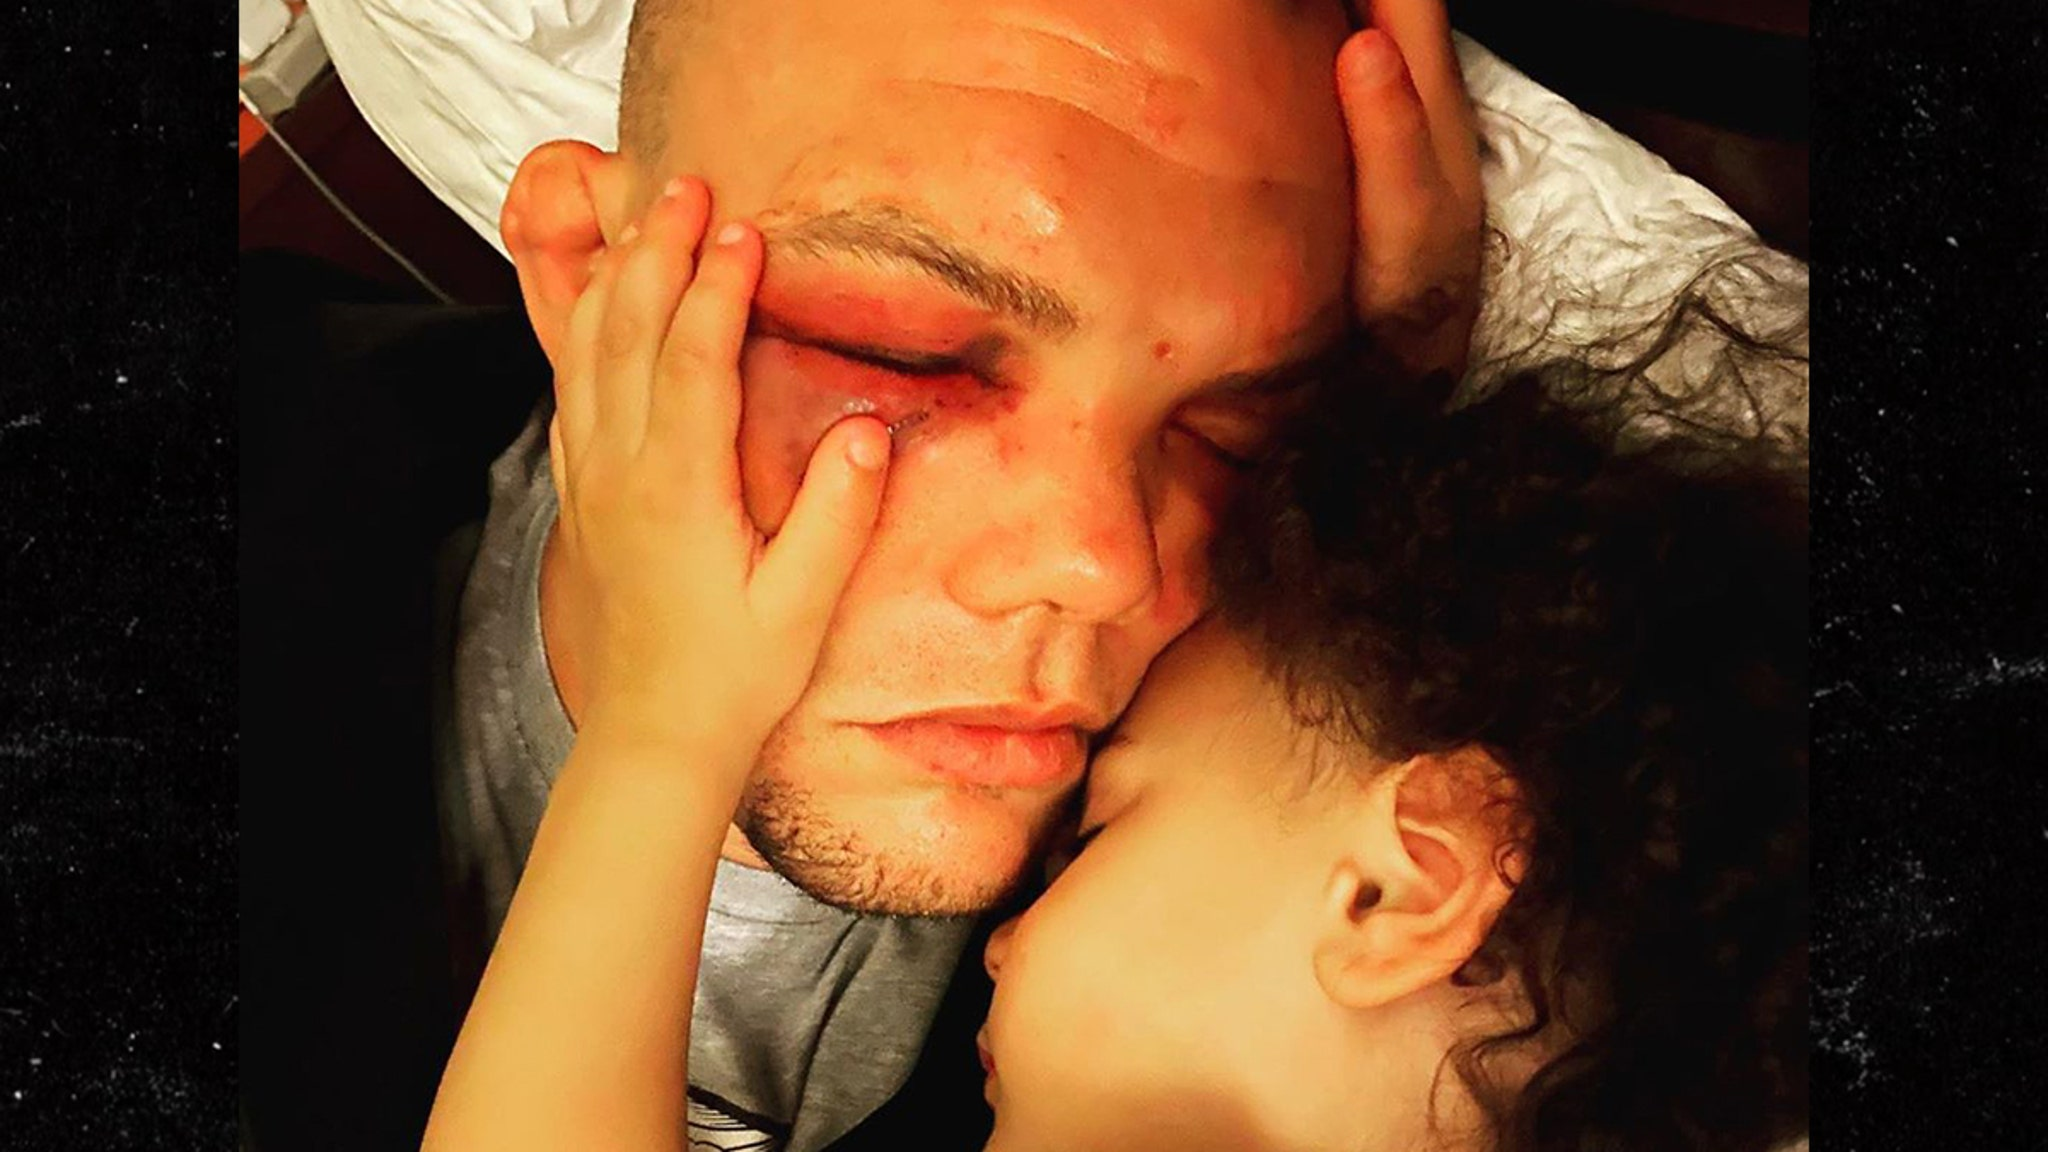 UFC's Anthony Smith Not Worried About Fight Criticism, Posts Injury Photo